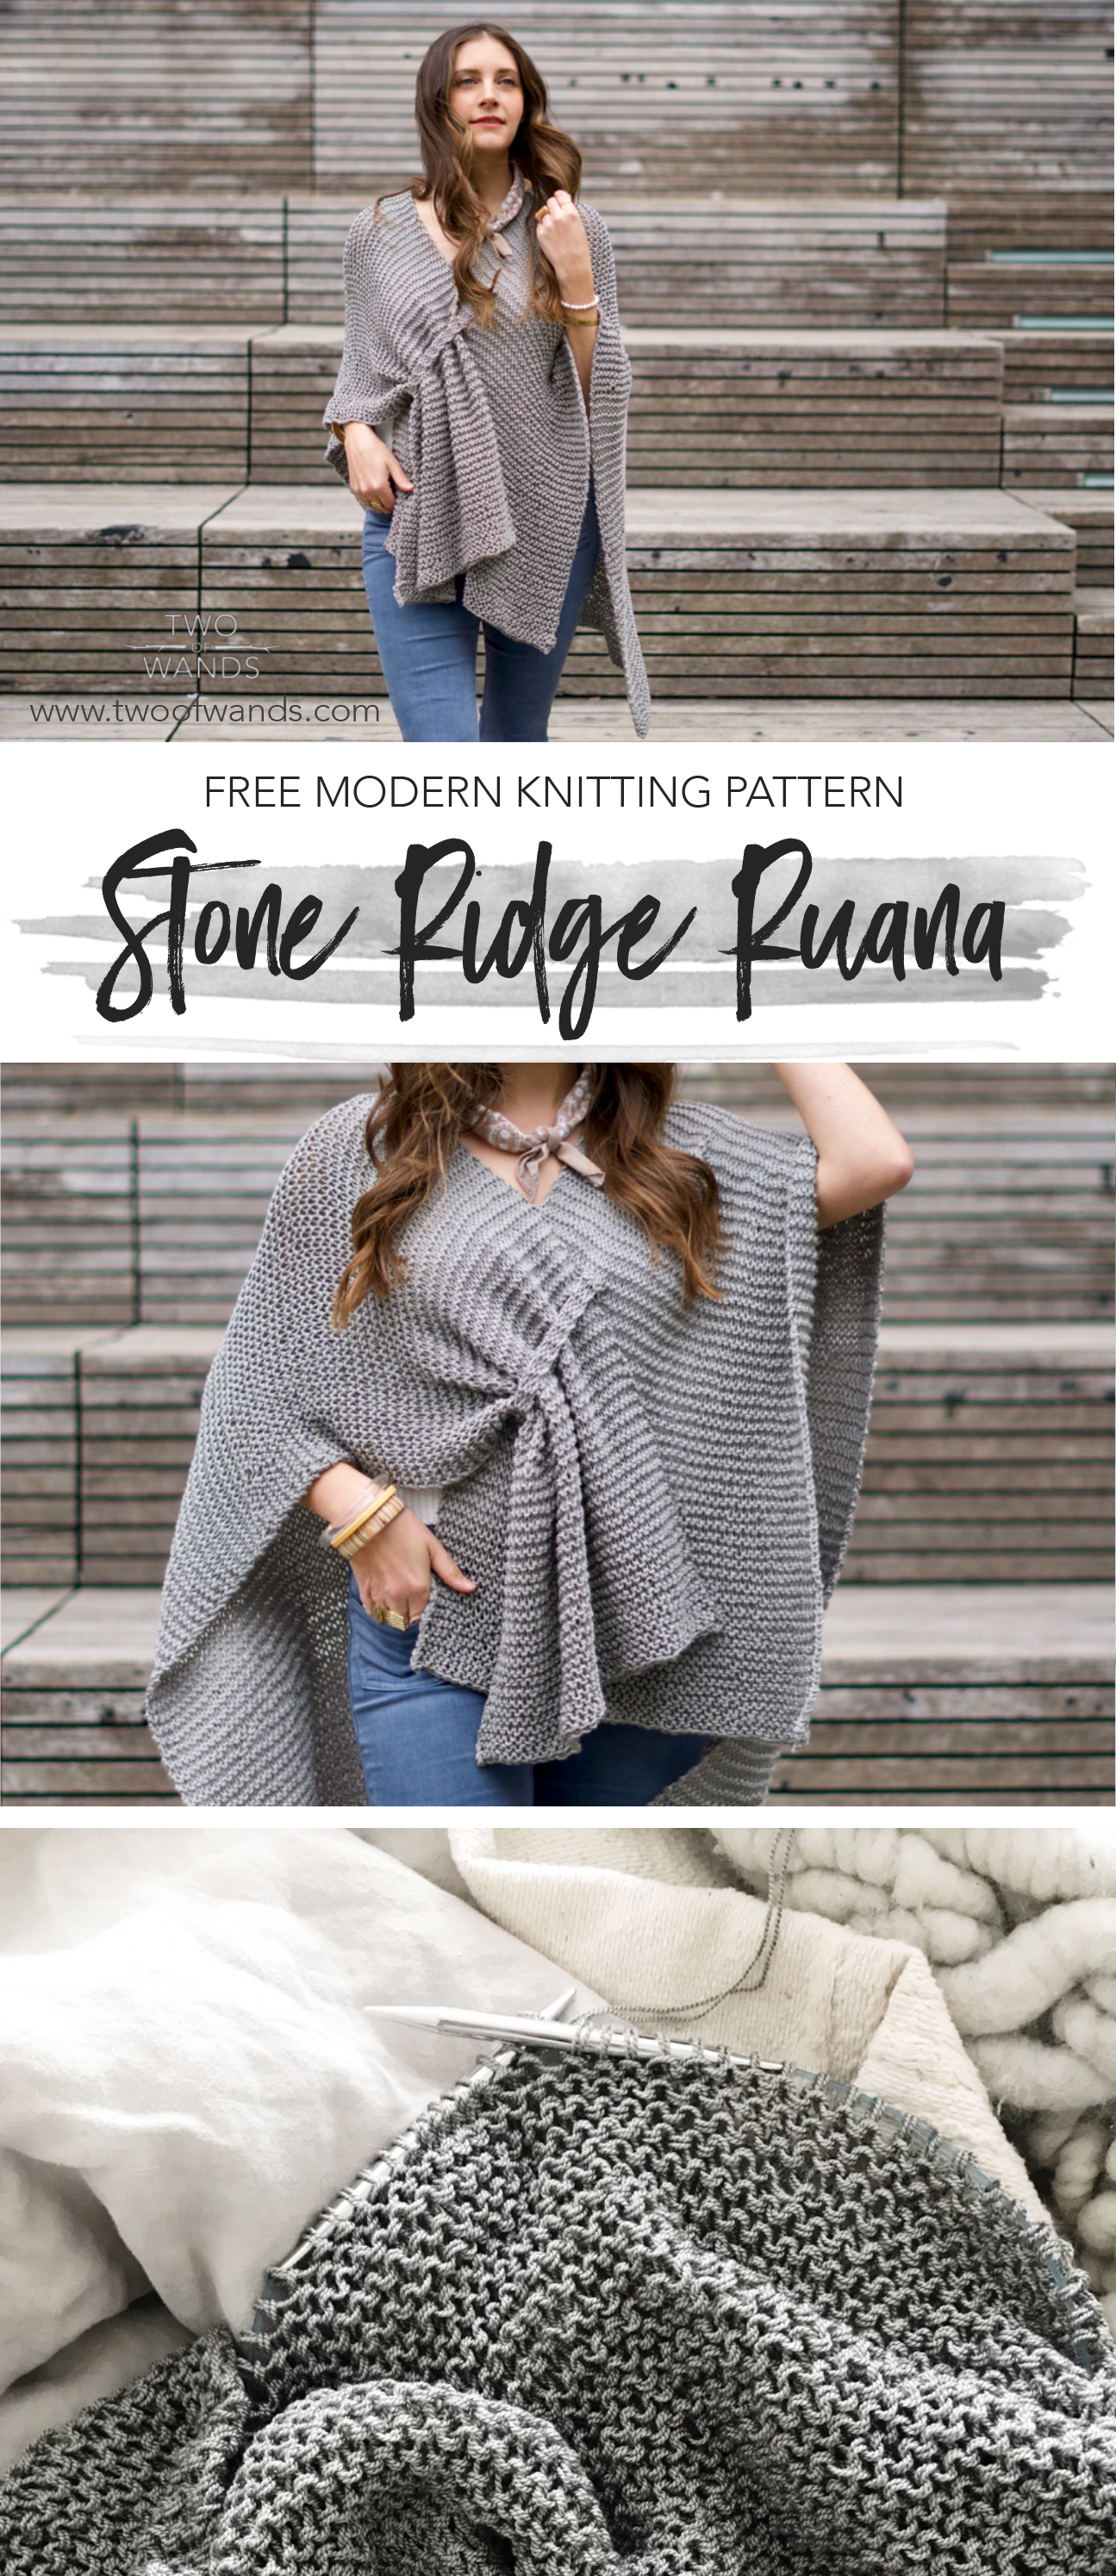 Stone Ridge Ruana pattern by Two of Wands